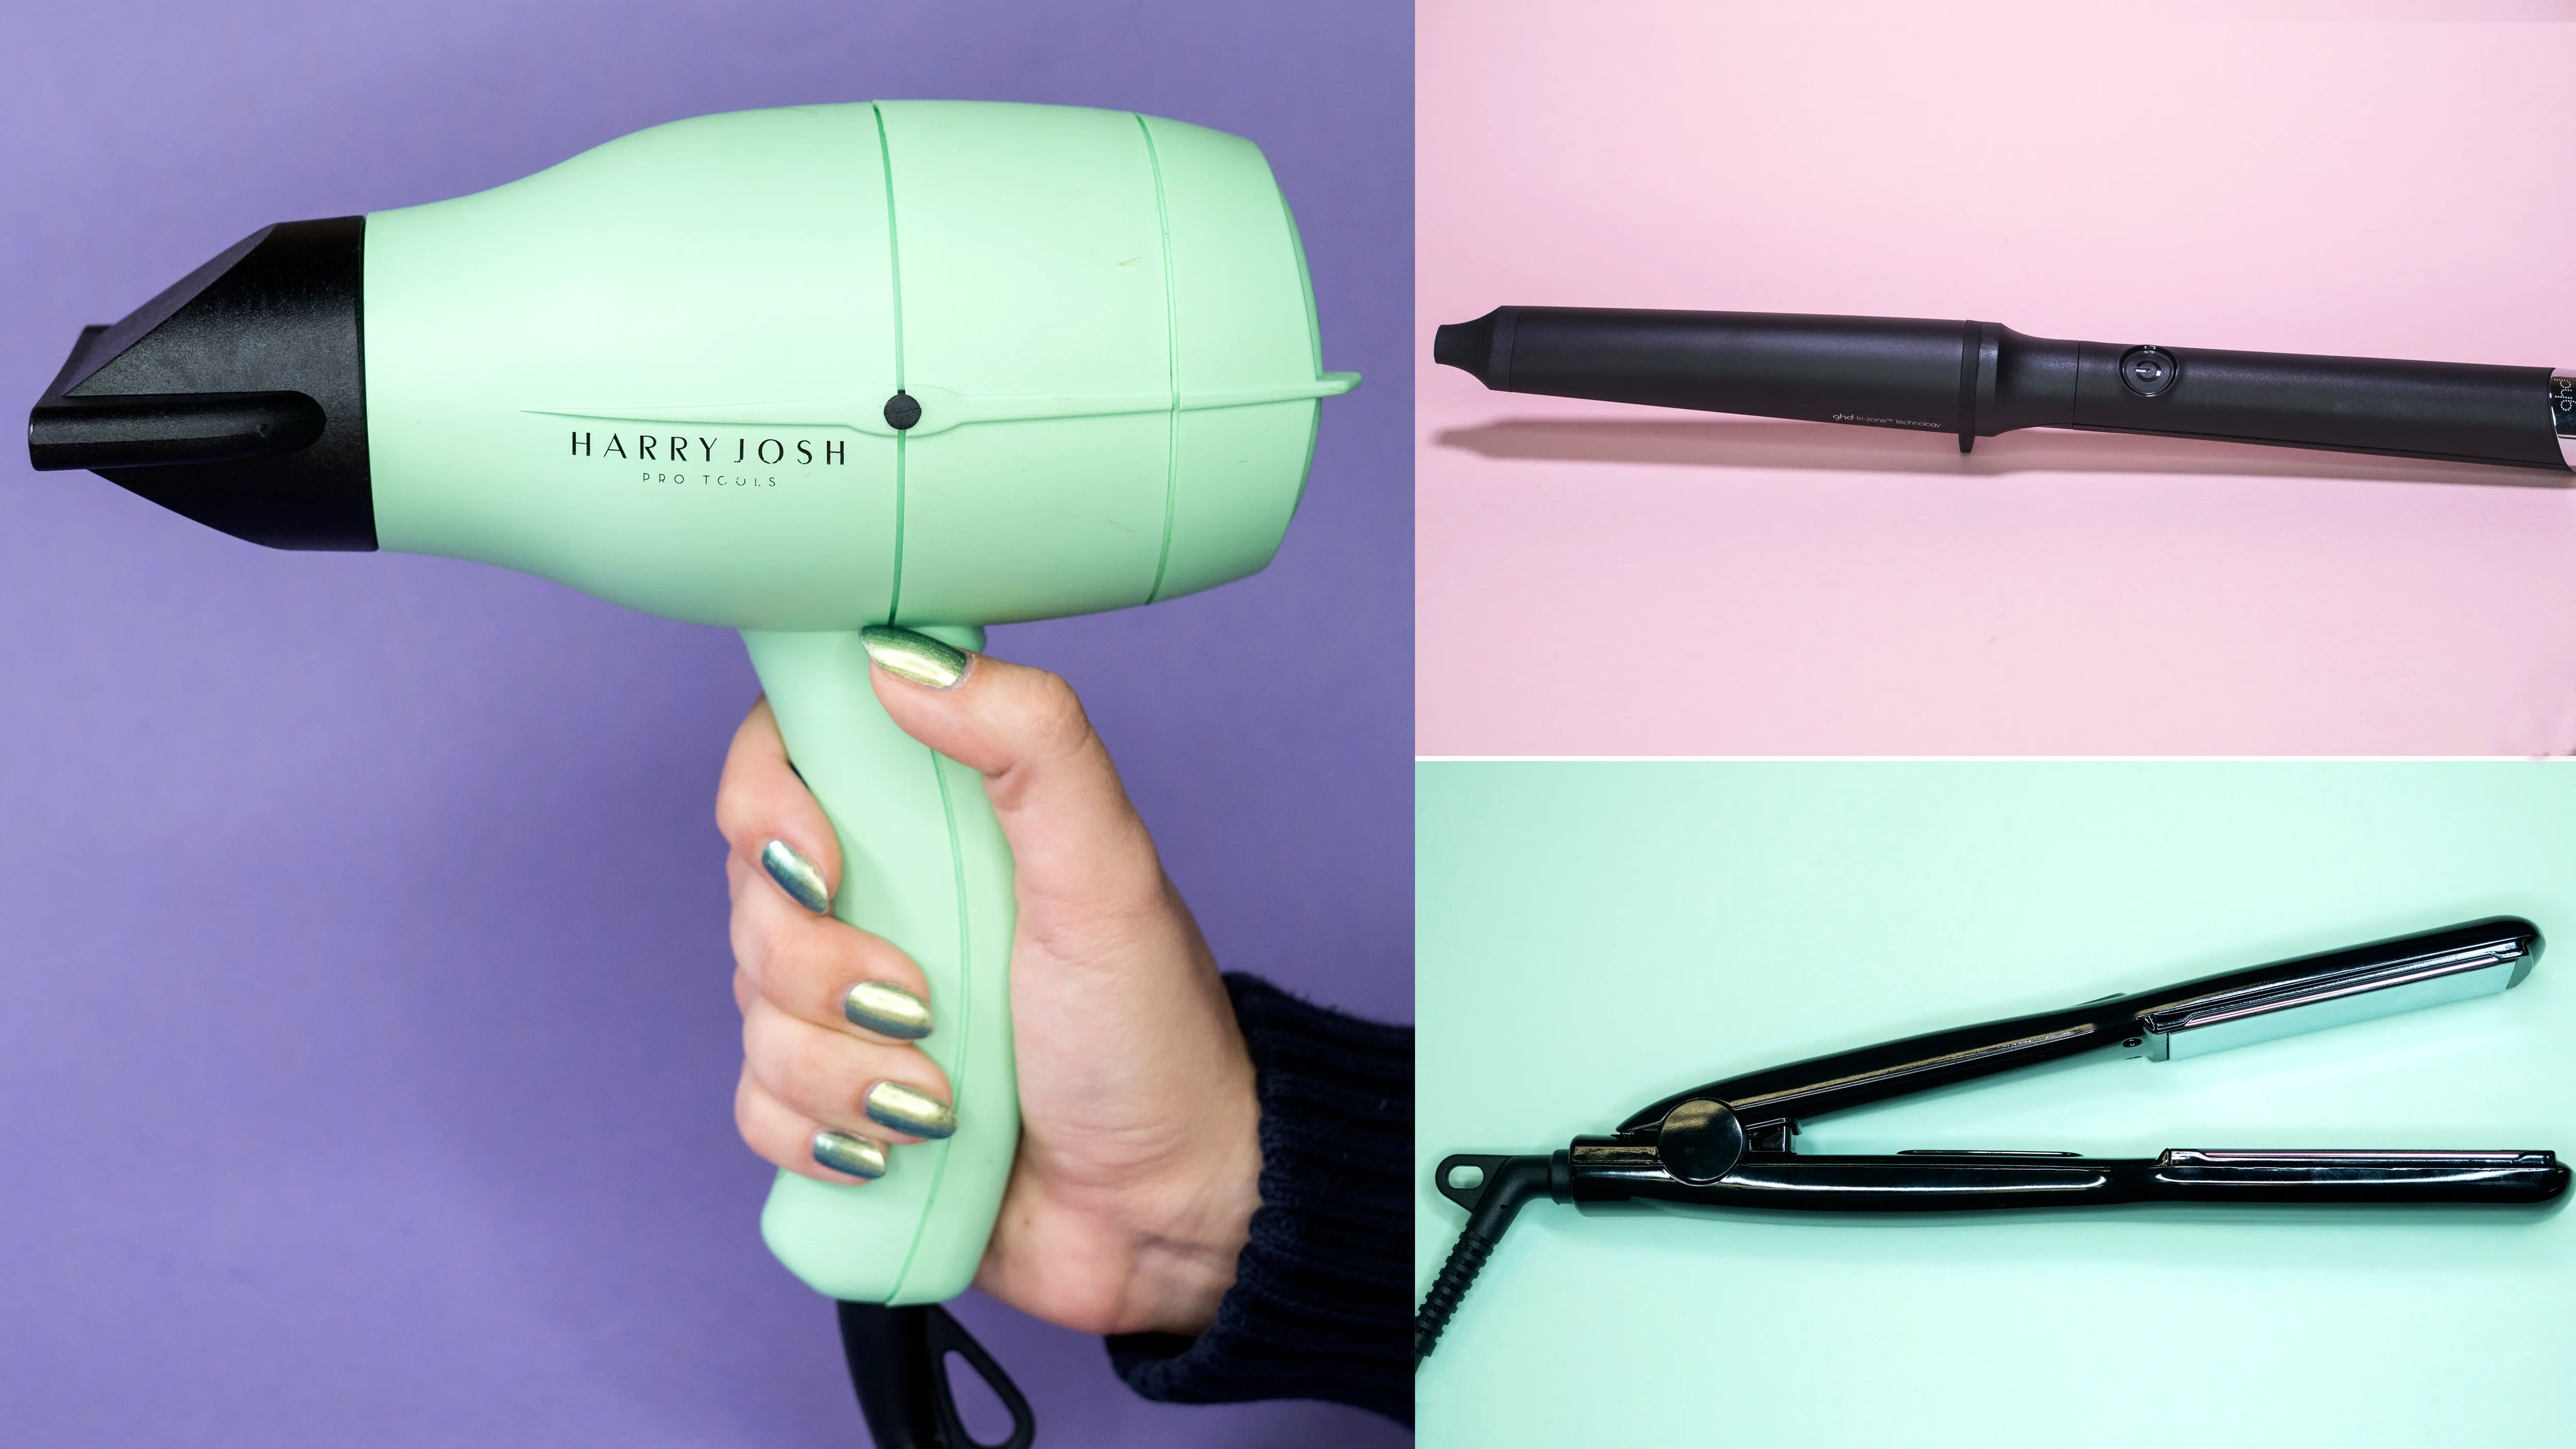 hair styling tools of